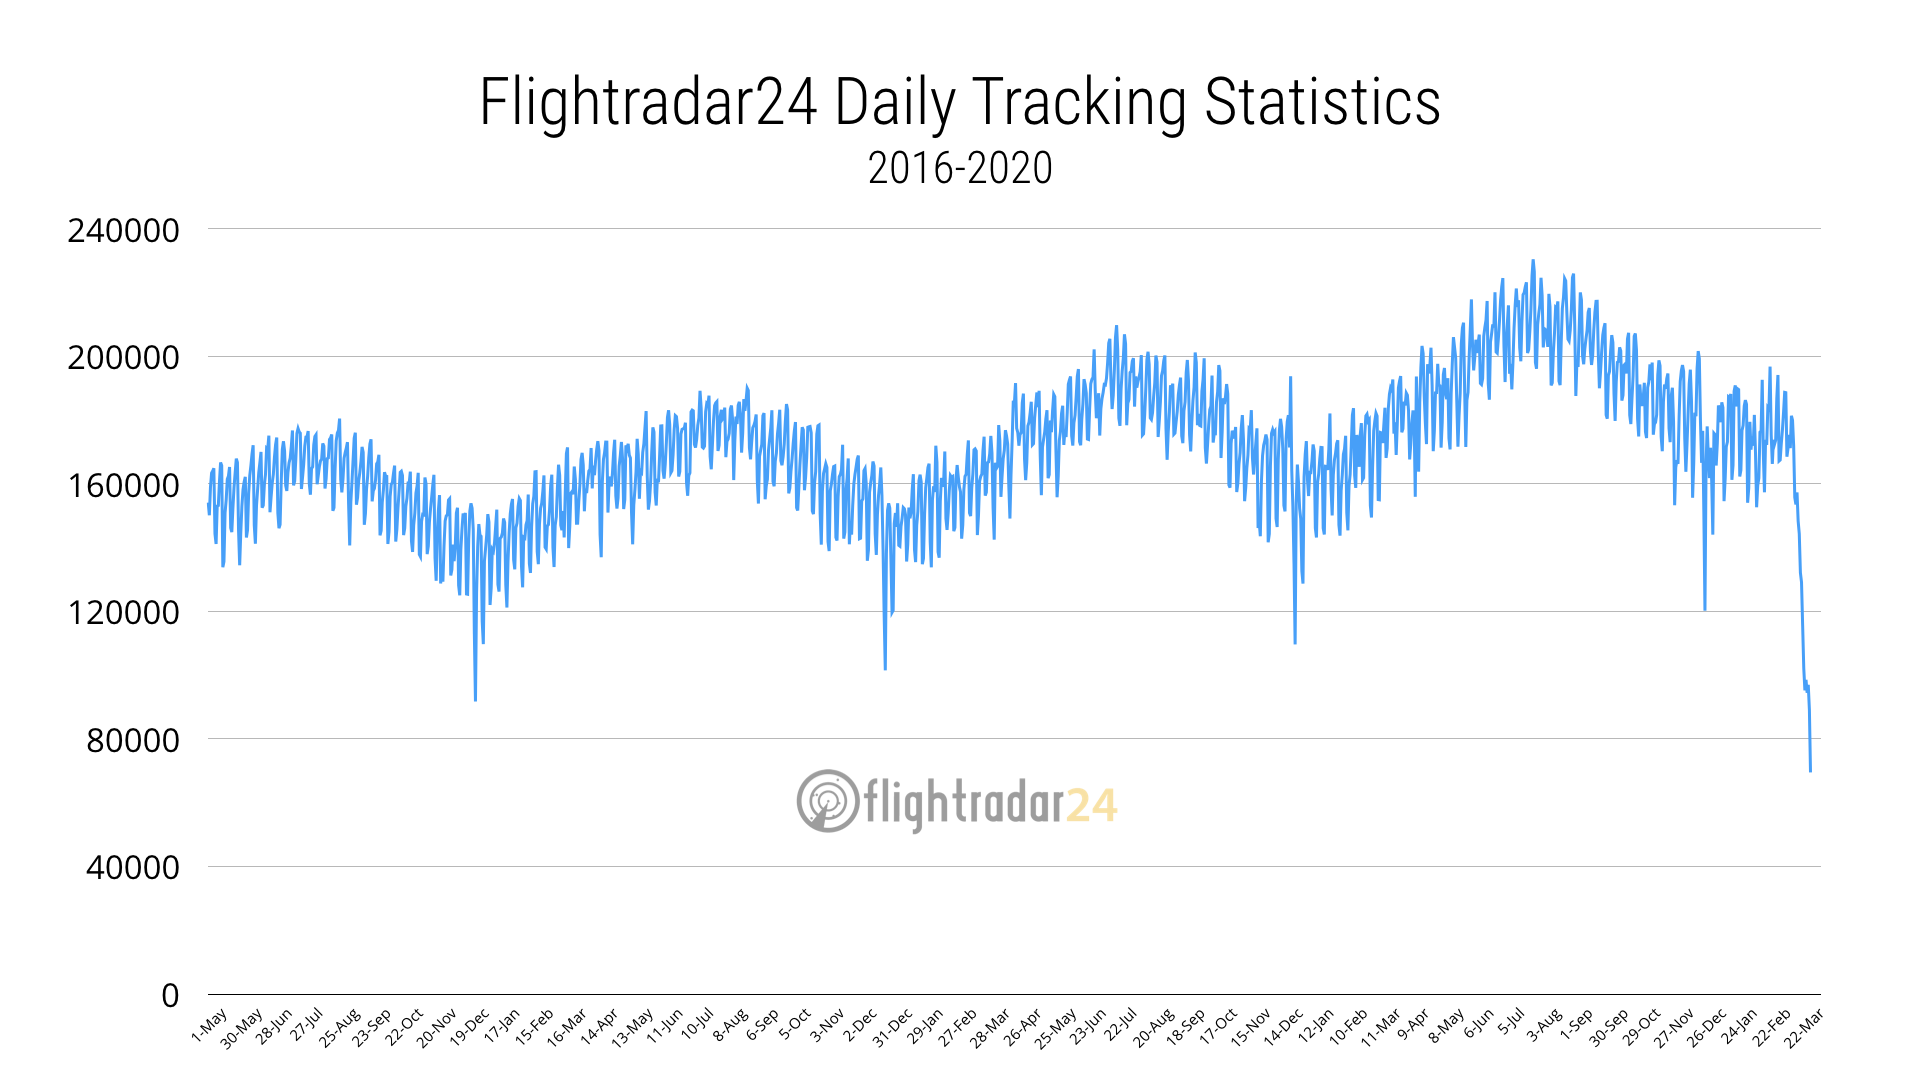 Total air traffic since 2016